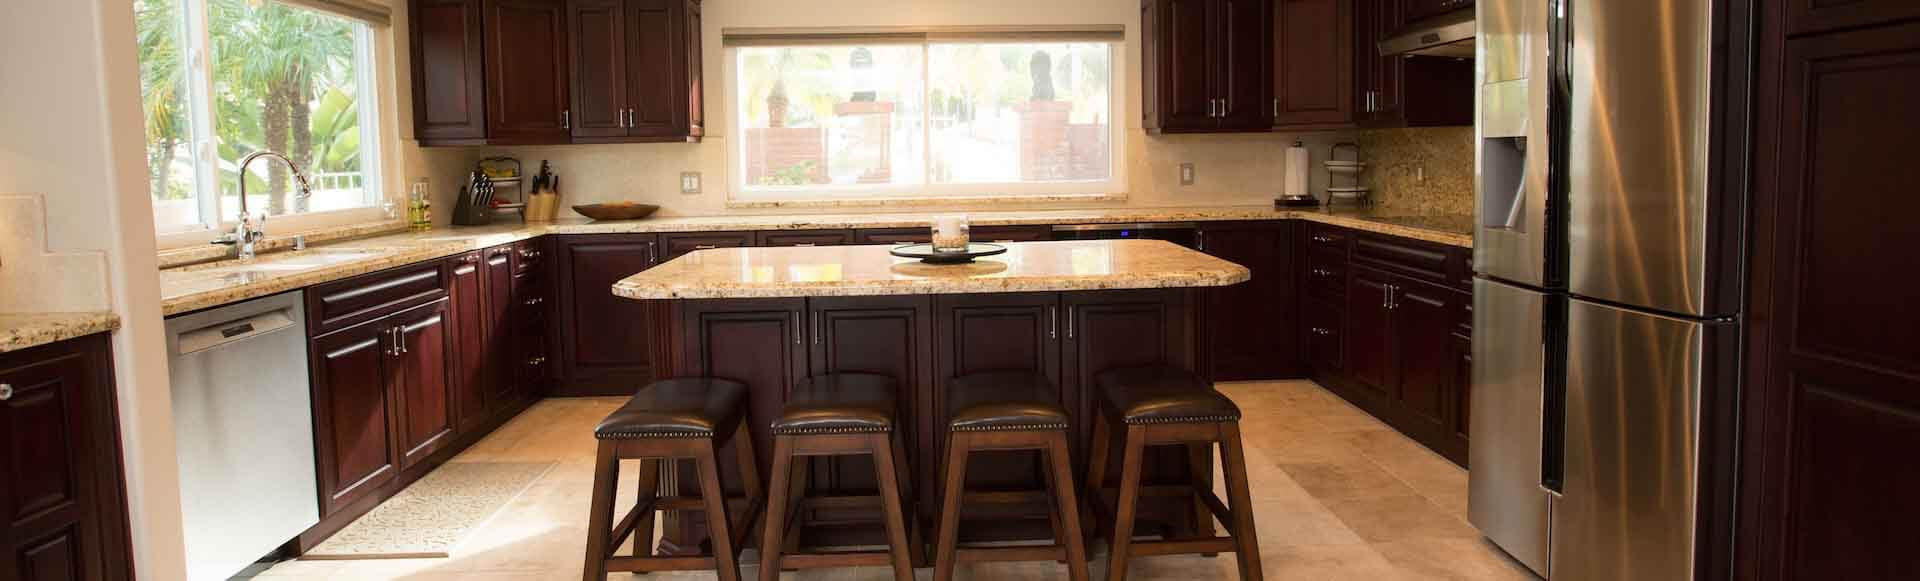 The #1 Custom Cabinet And Countertop Designer In The Orange County, San  Diego County And Inland Empire Areas!!